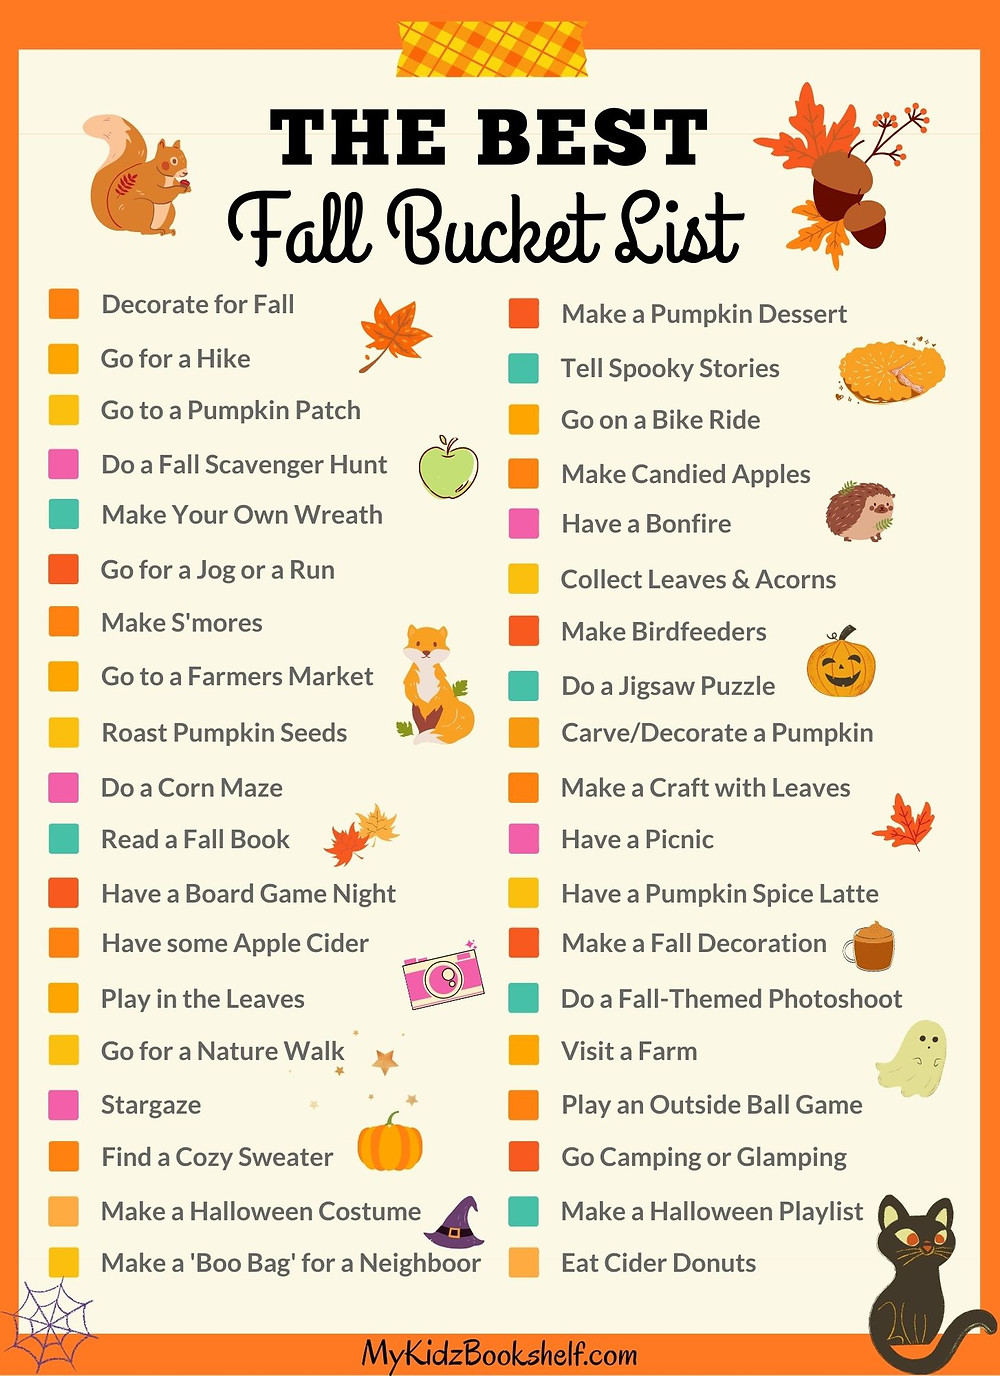 The Best Fall Bucket List printable with ideas for fall fun check mark off the fun things to do!